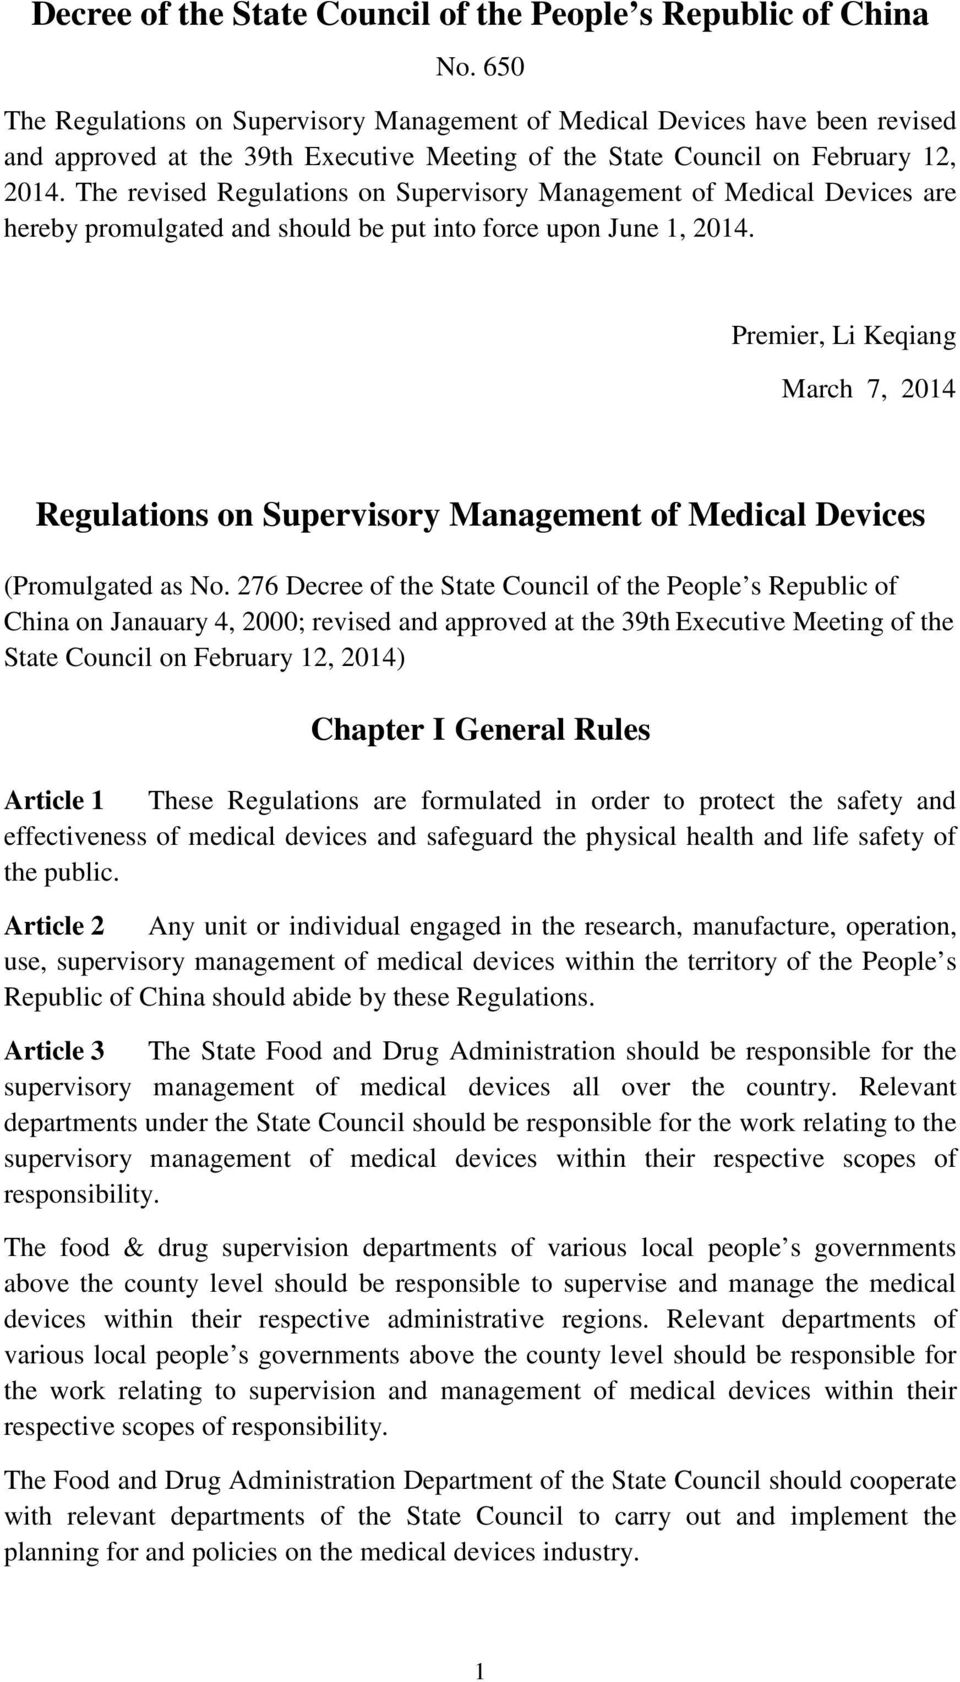 The revised Regulations on Supervisory Management of Medical Devices are hereby promulgated and should be put into force upon June 1, 2014.